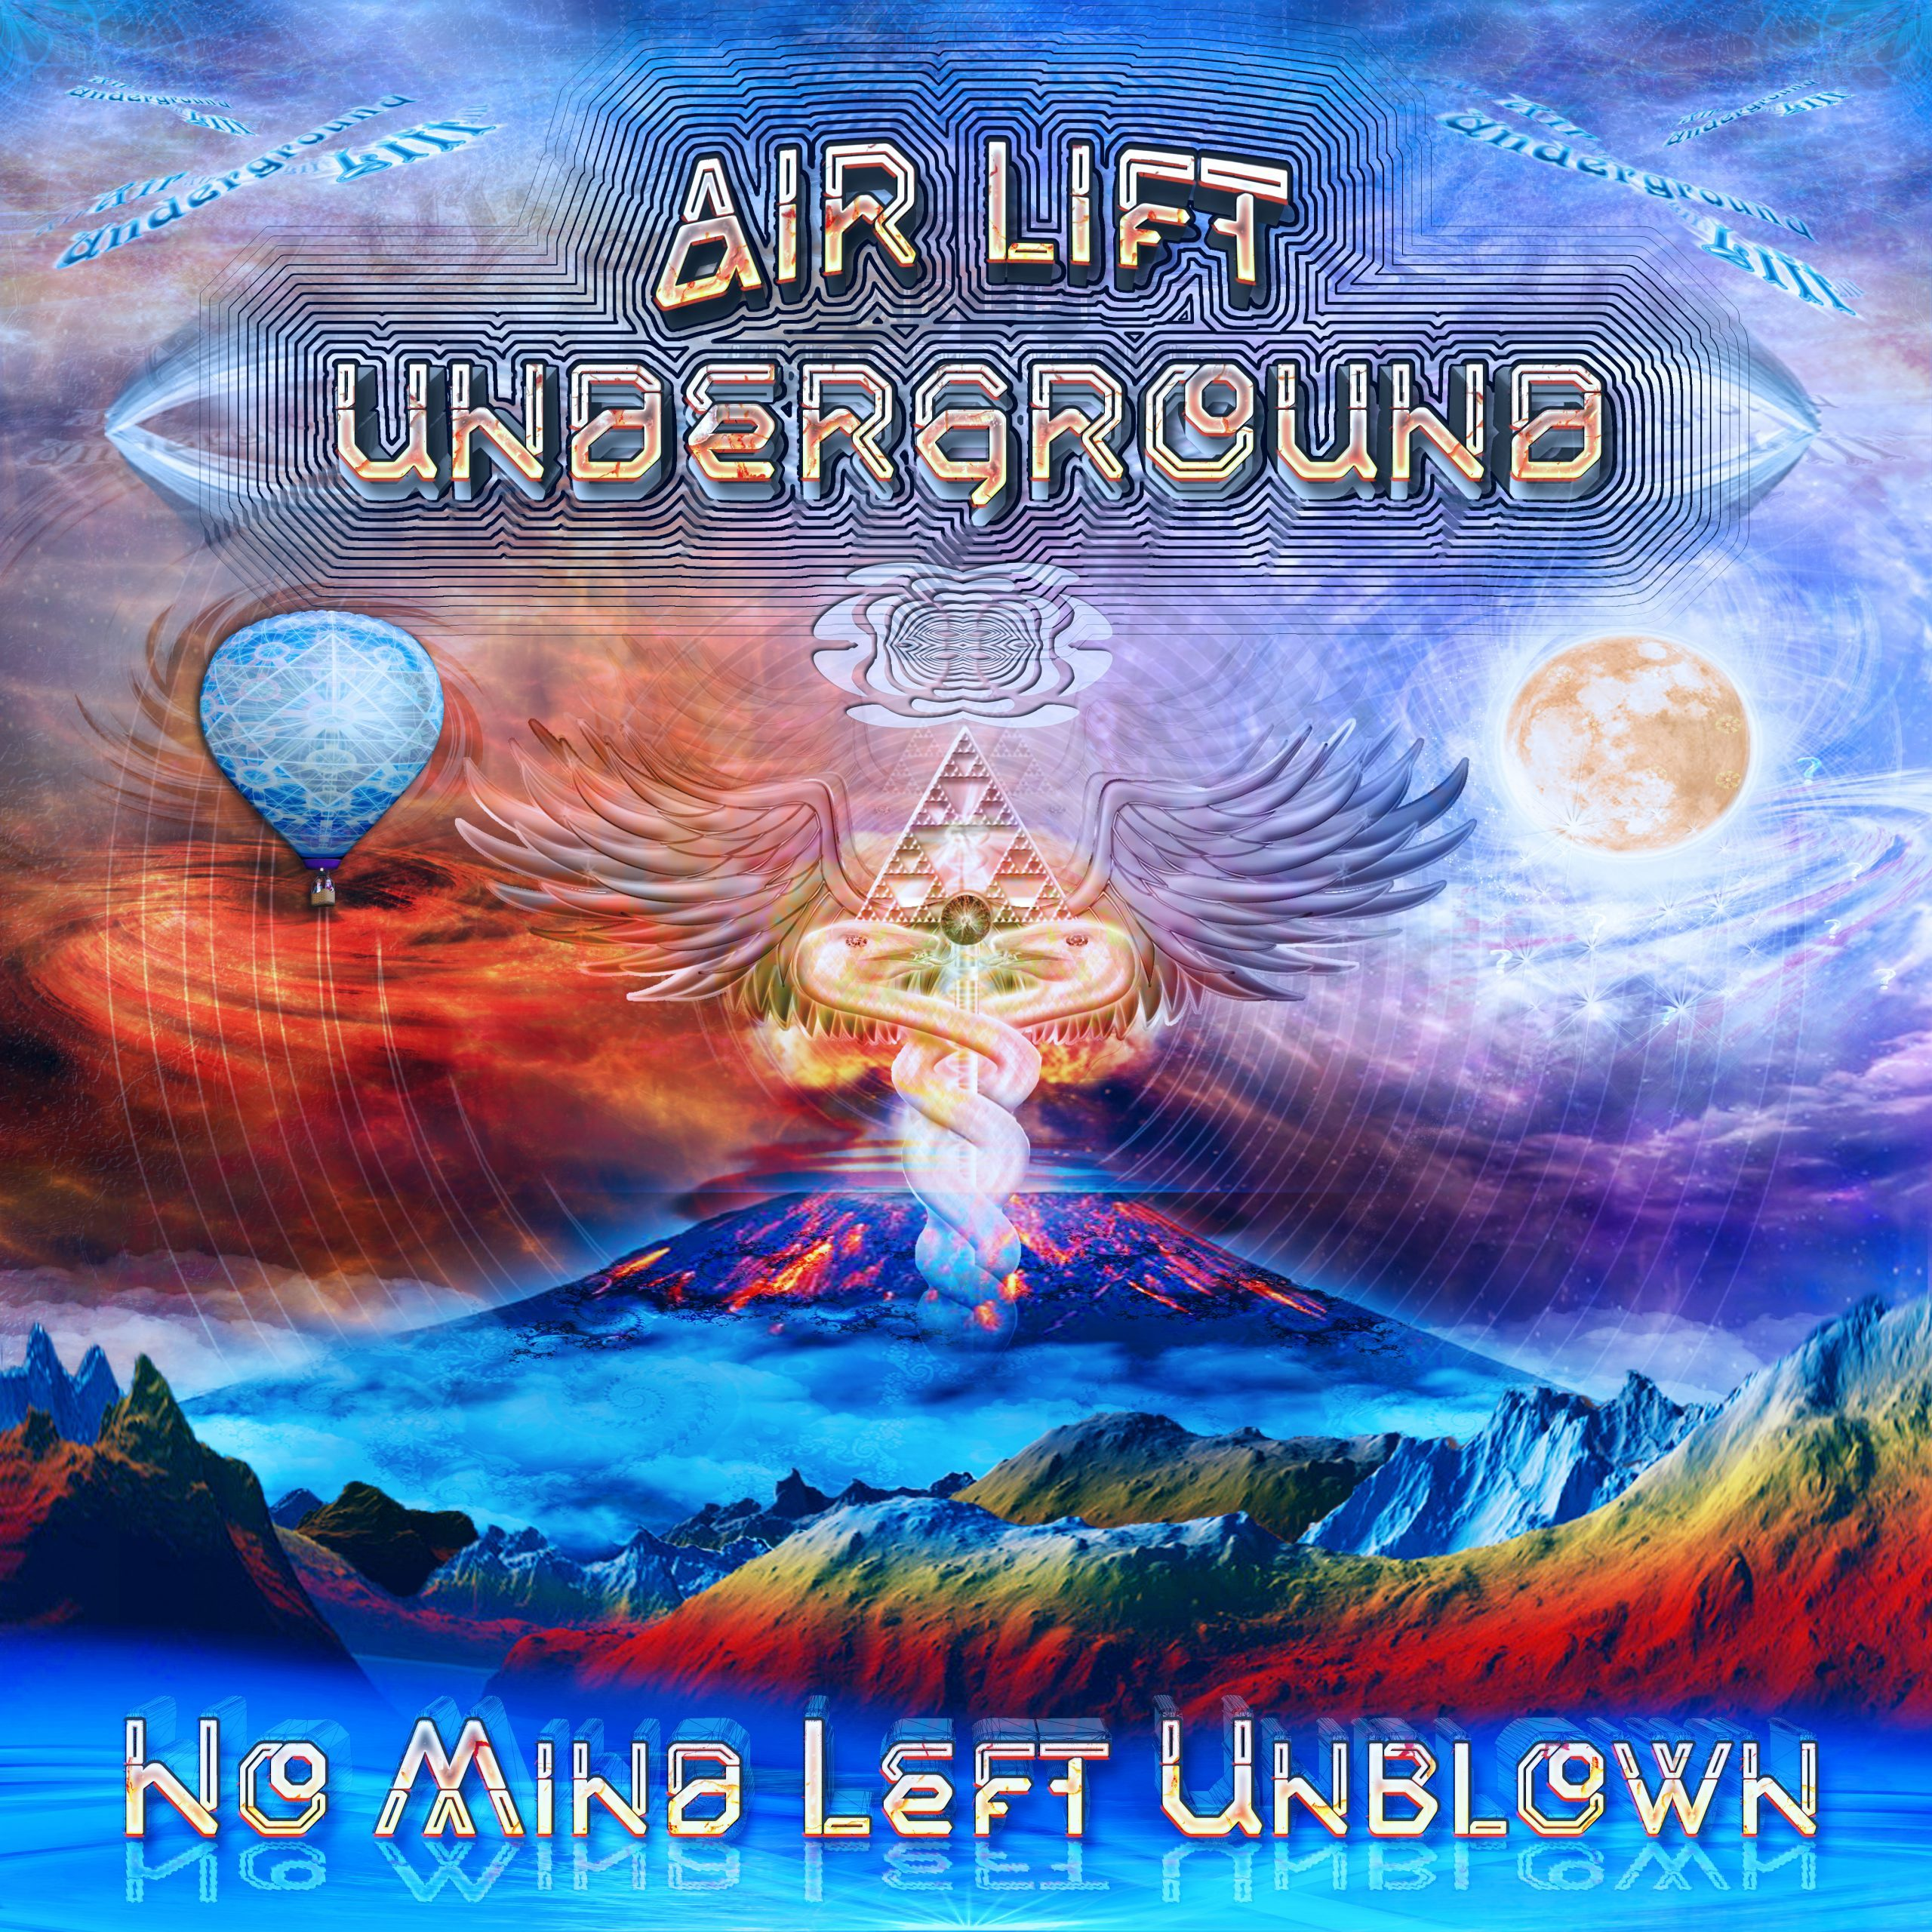 Air Lift Underground